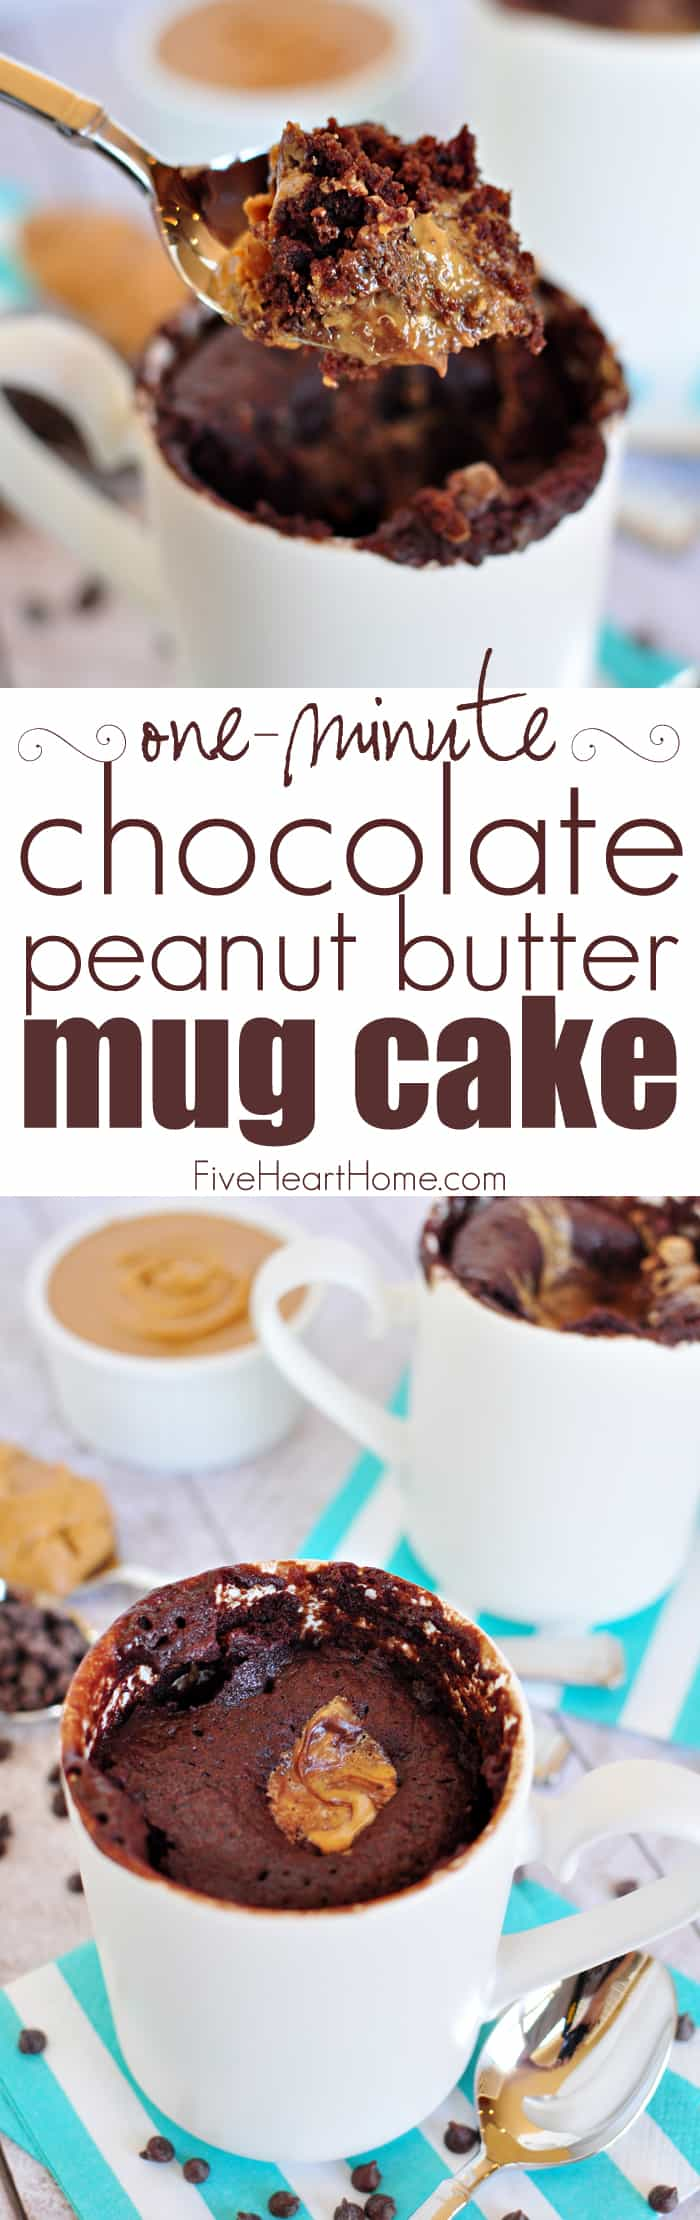 One-Minute Chocolate Peanut Butter Mug Cake ~ moist chocolate cake with a molten peanut butter center bakes up in a microwaved mug in just one minute! | FiveHeartHome.com via @fivehearthome